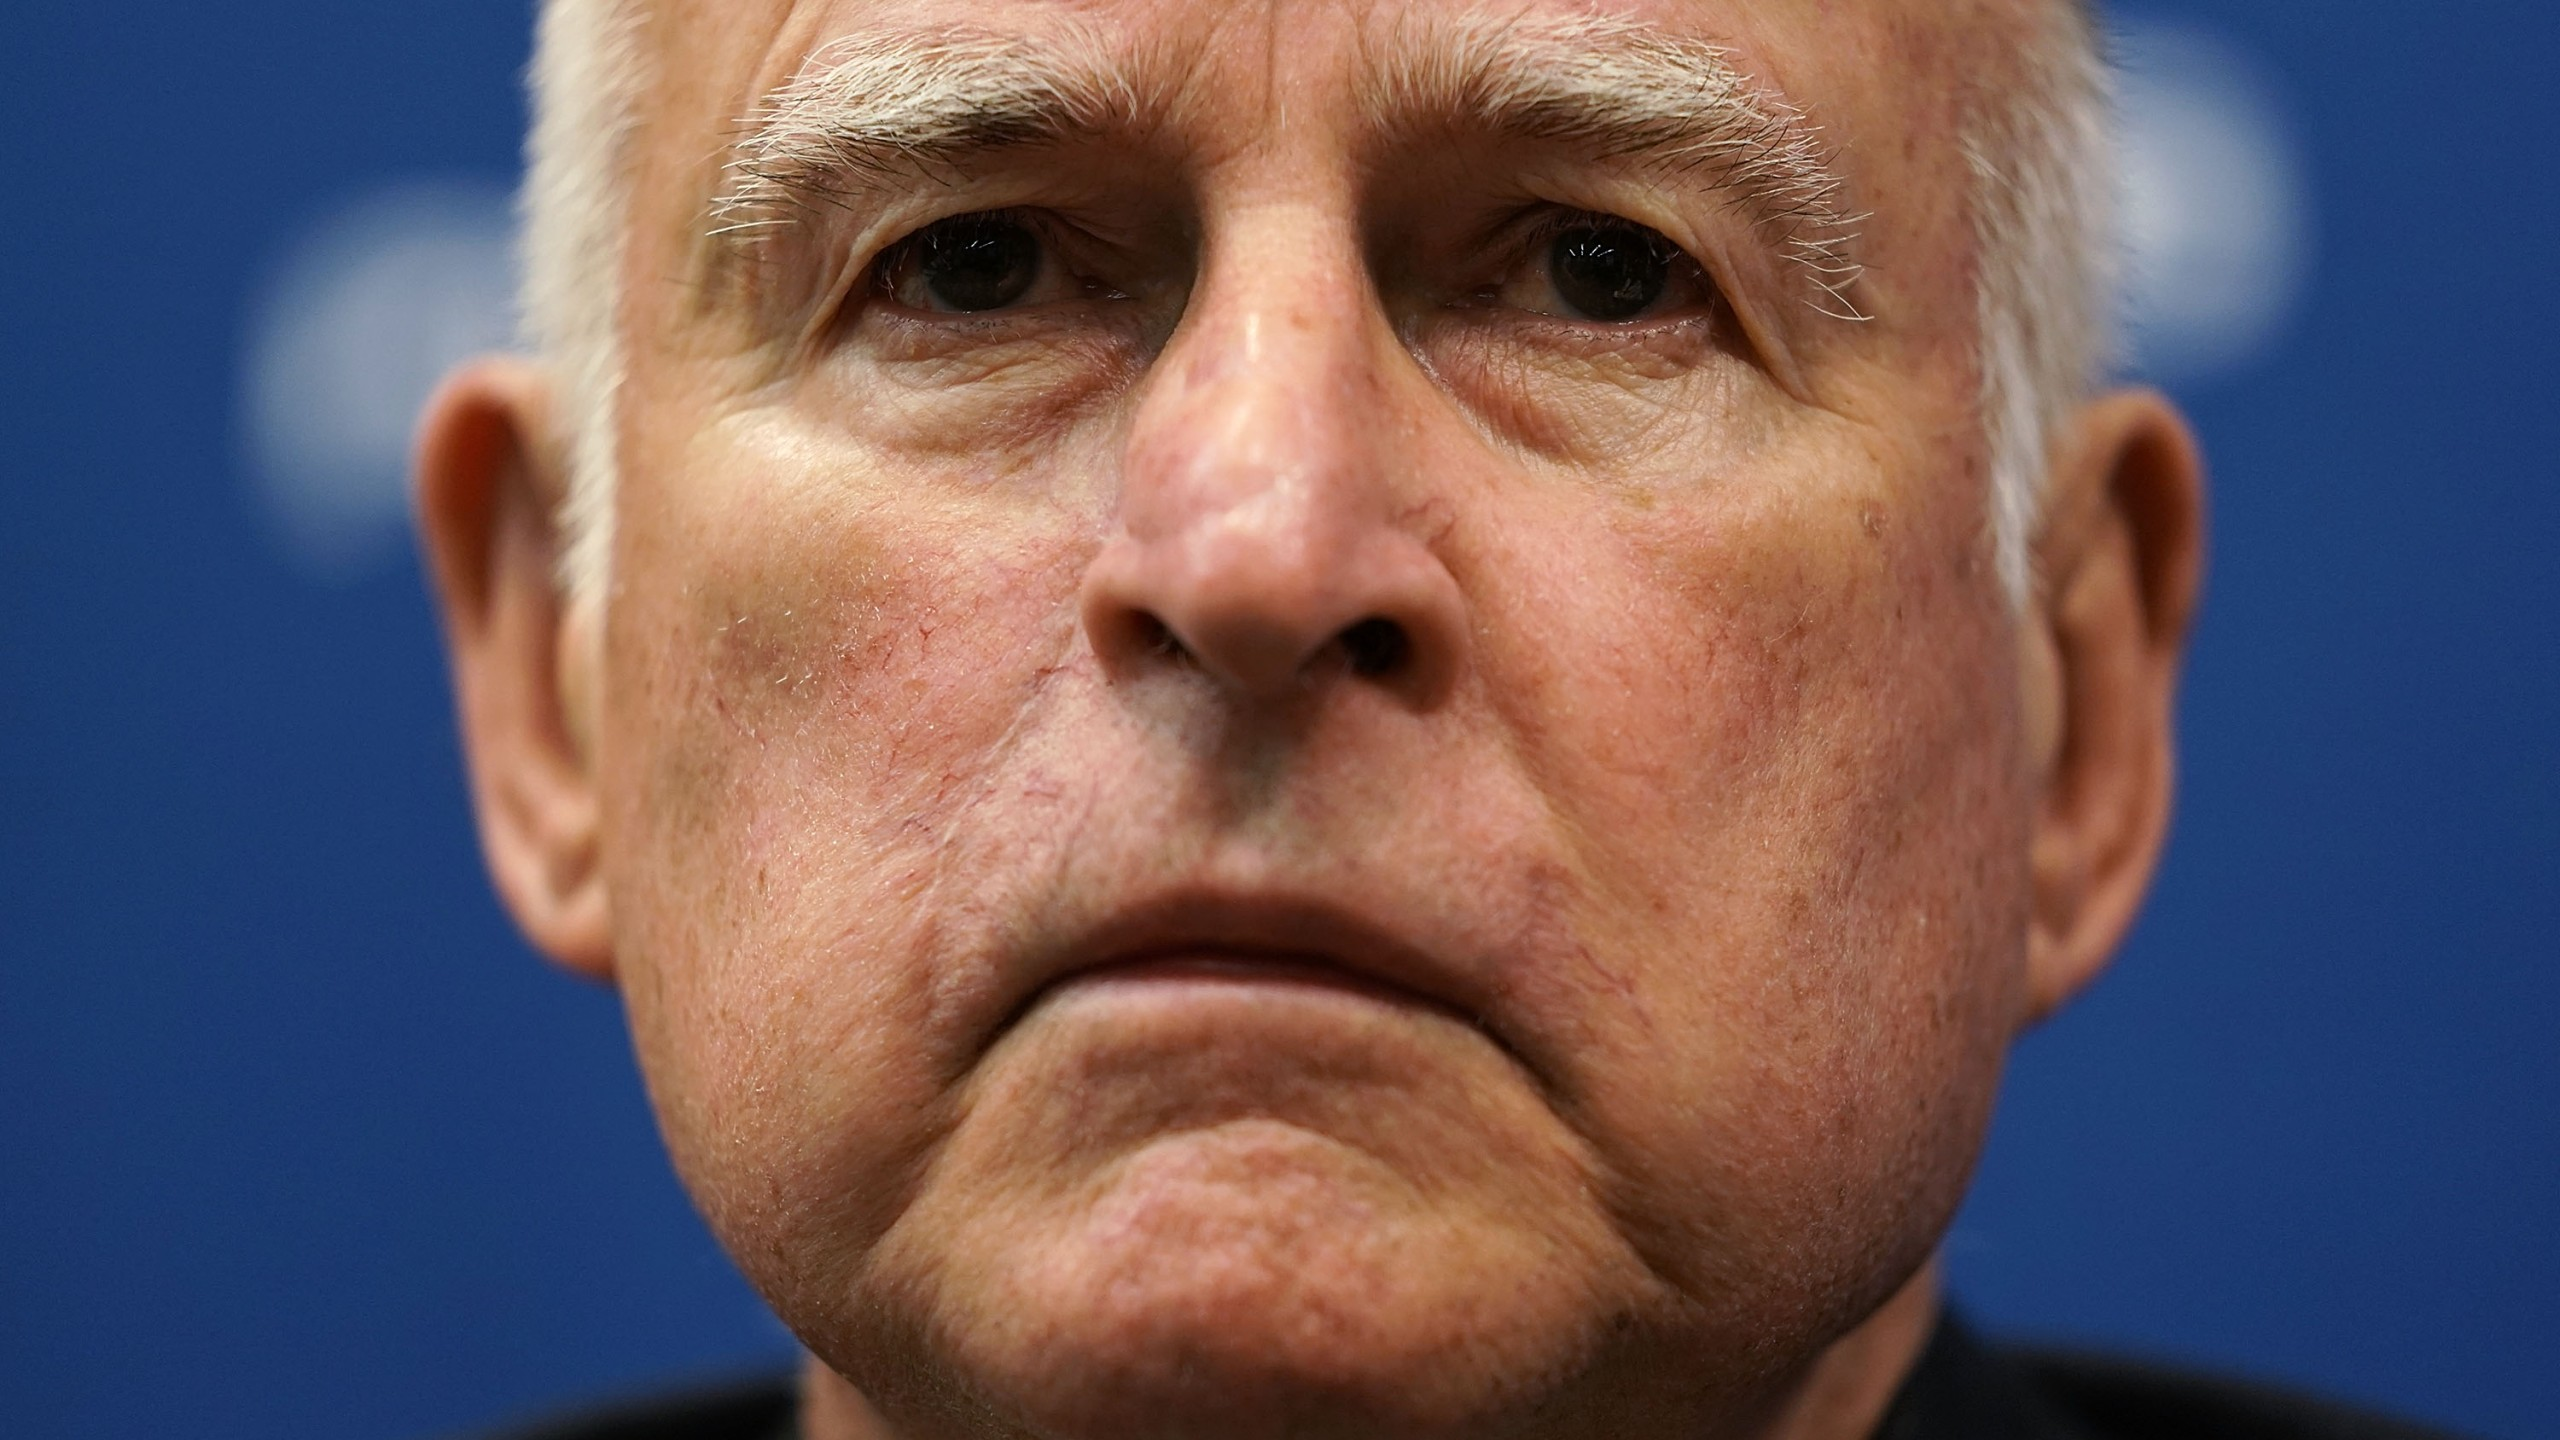 Gov. Jerry Brown listens during an event at the National Press Club April 17, 2018 in Washington, DC. (Credit: Alex Wong/Getty Images)